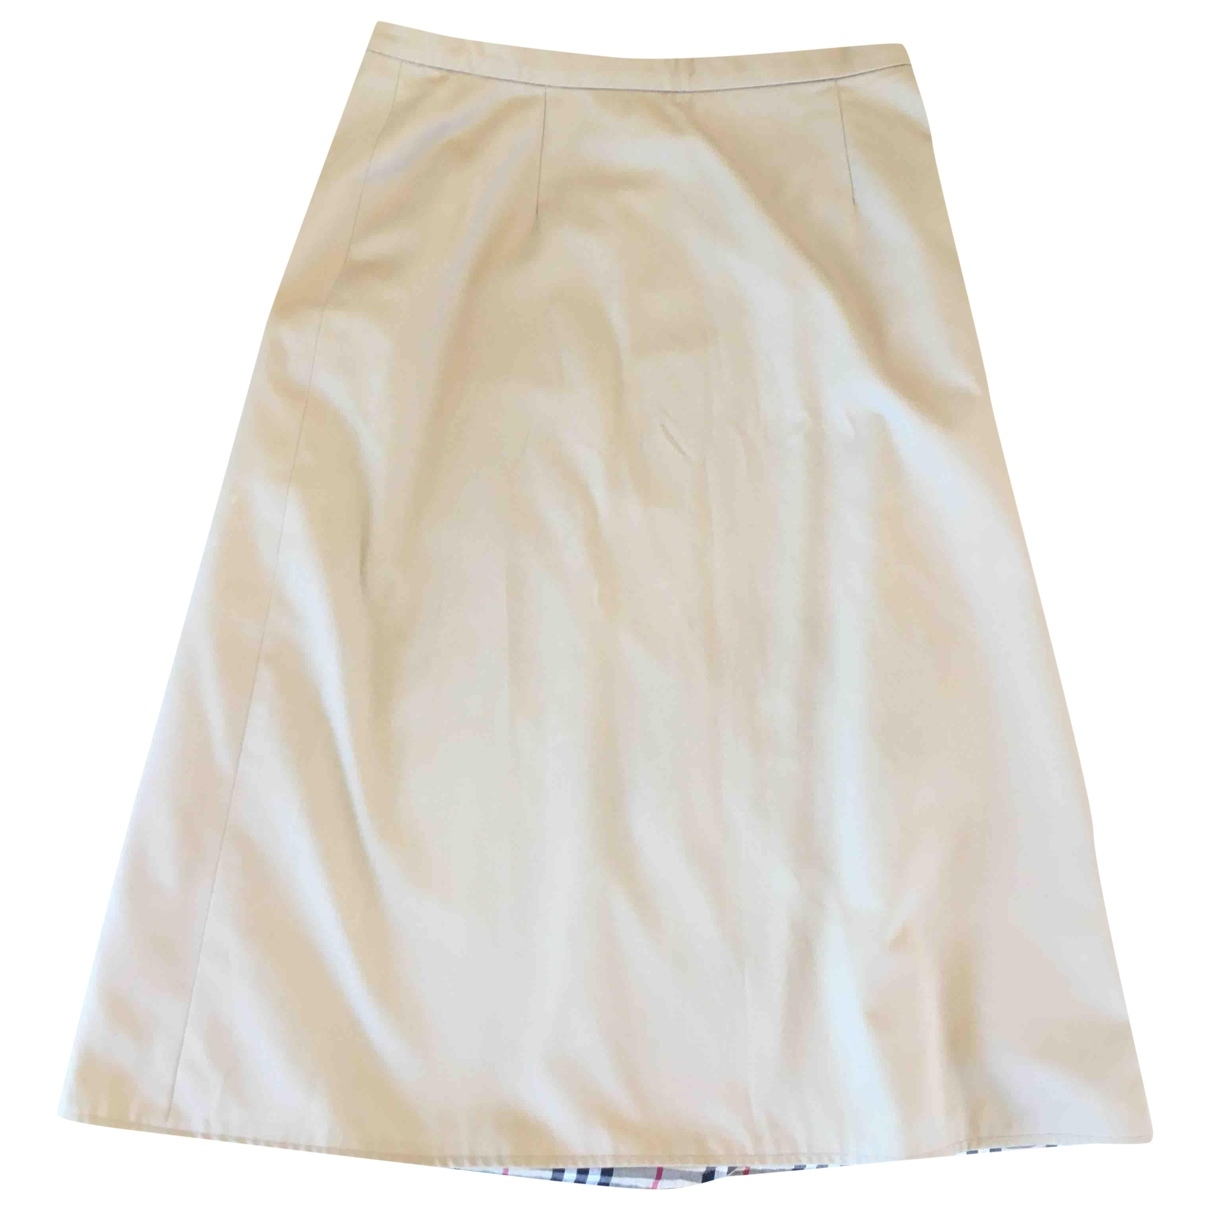 Burberry \N Beige Cotton skirt for Women 14 UK